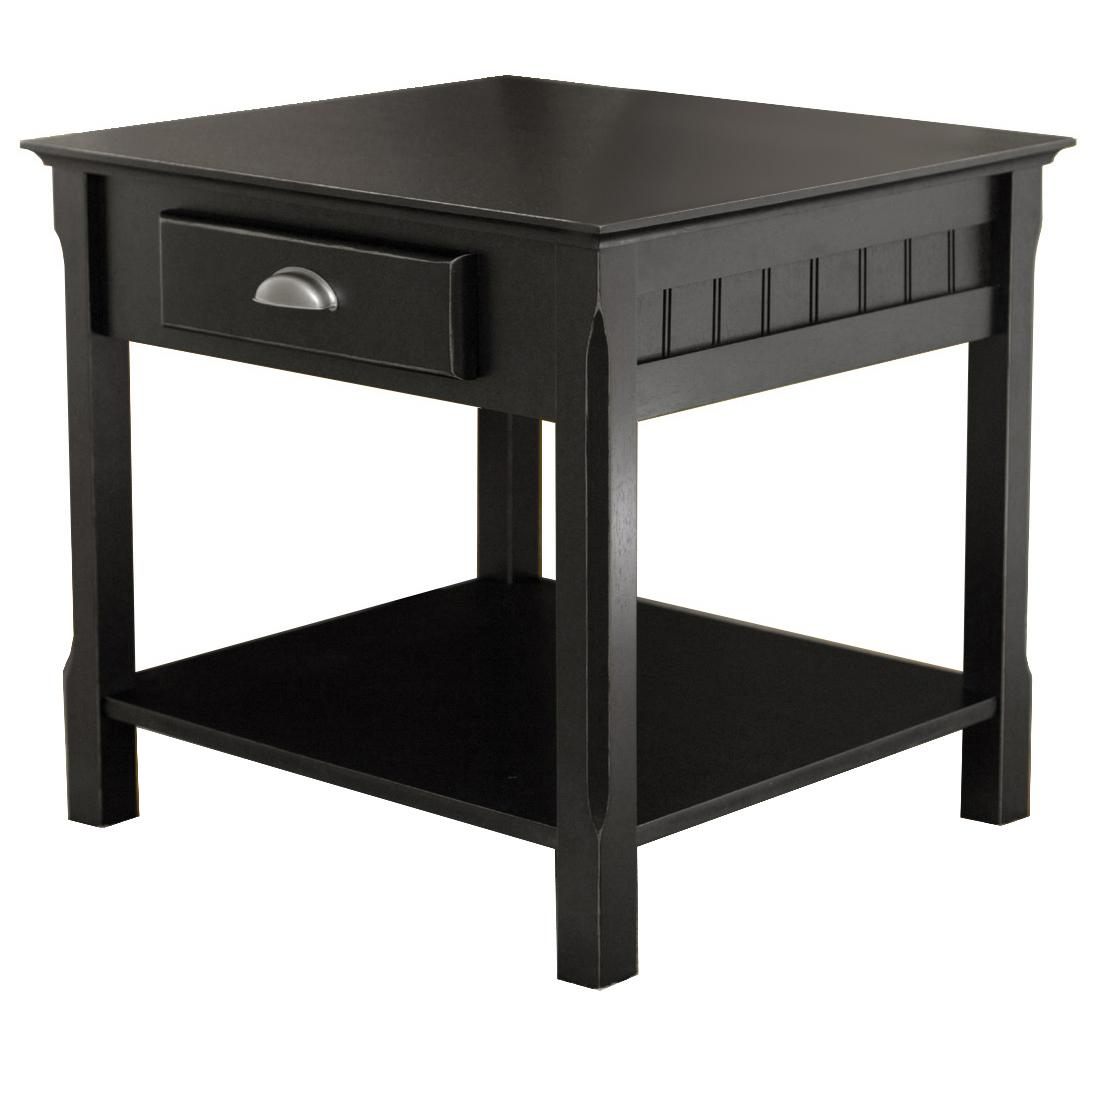 Fresh Amazon.com: Winsome Wood End Table with Drawer and Shelf, Black  NG66